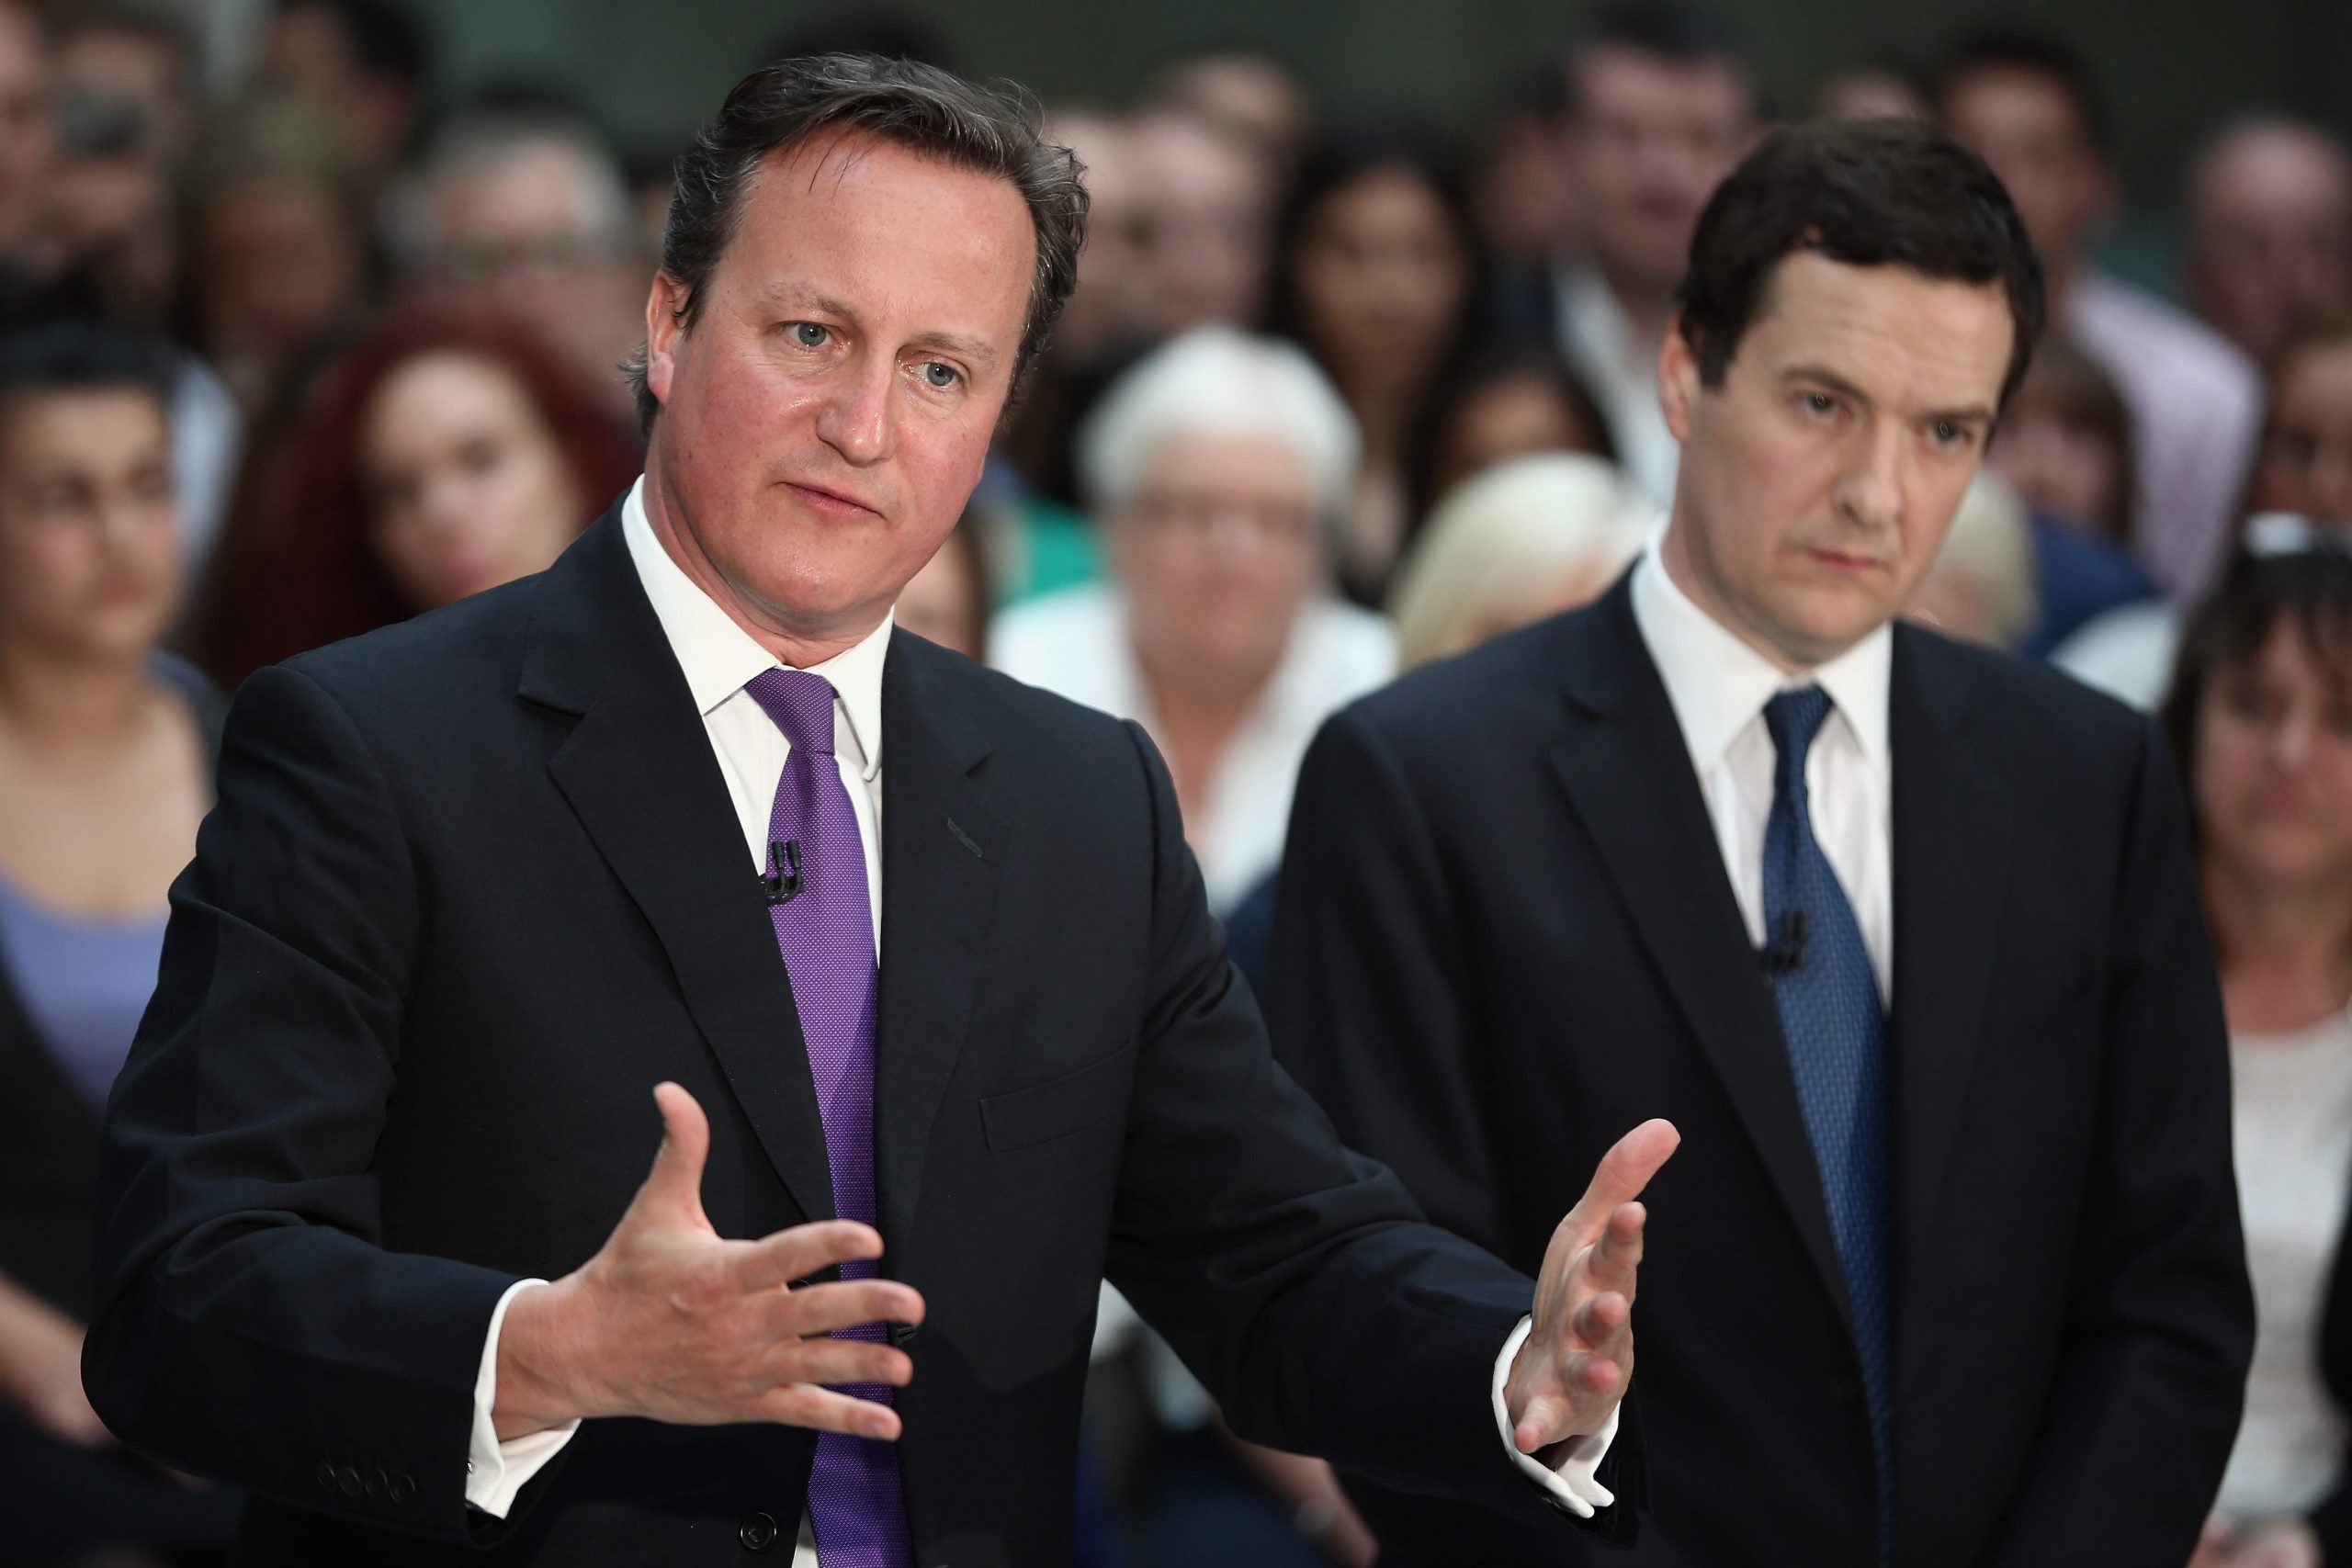 The Tories want to buy Britain, but they're losing the campaigning battle